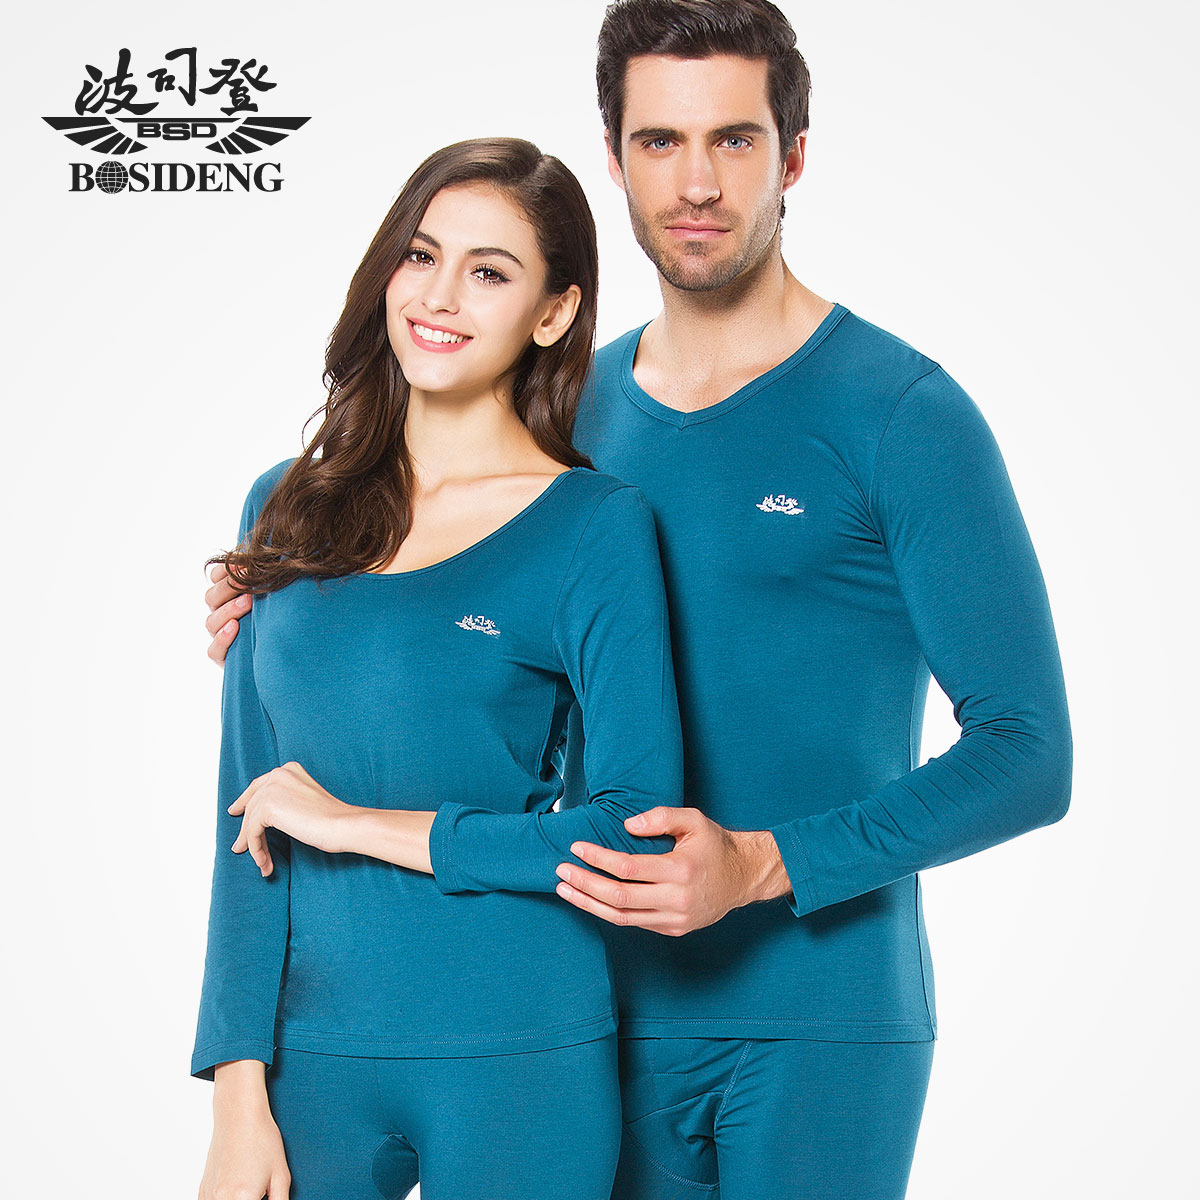 Bosideng men's thermal underwear modal/ms. couple thin section v-neck suit qiuyiqiuku basis